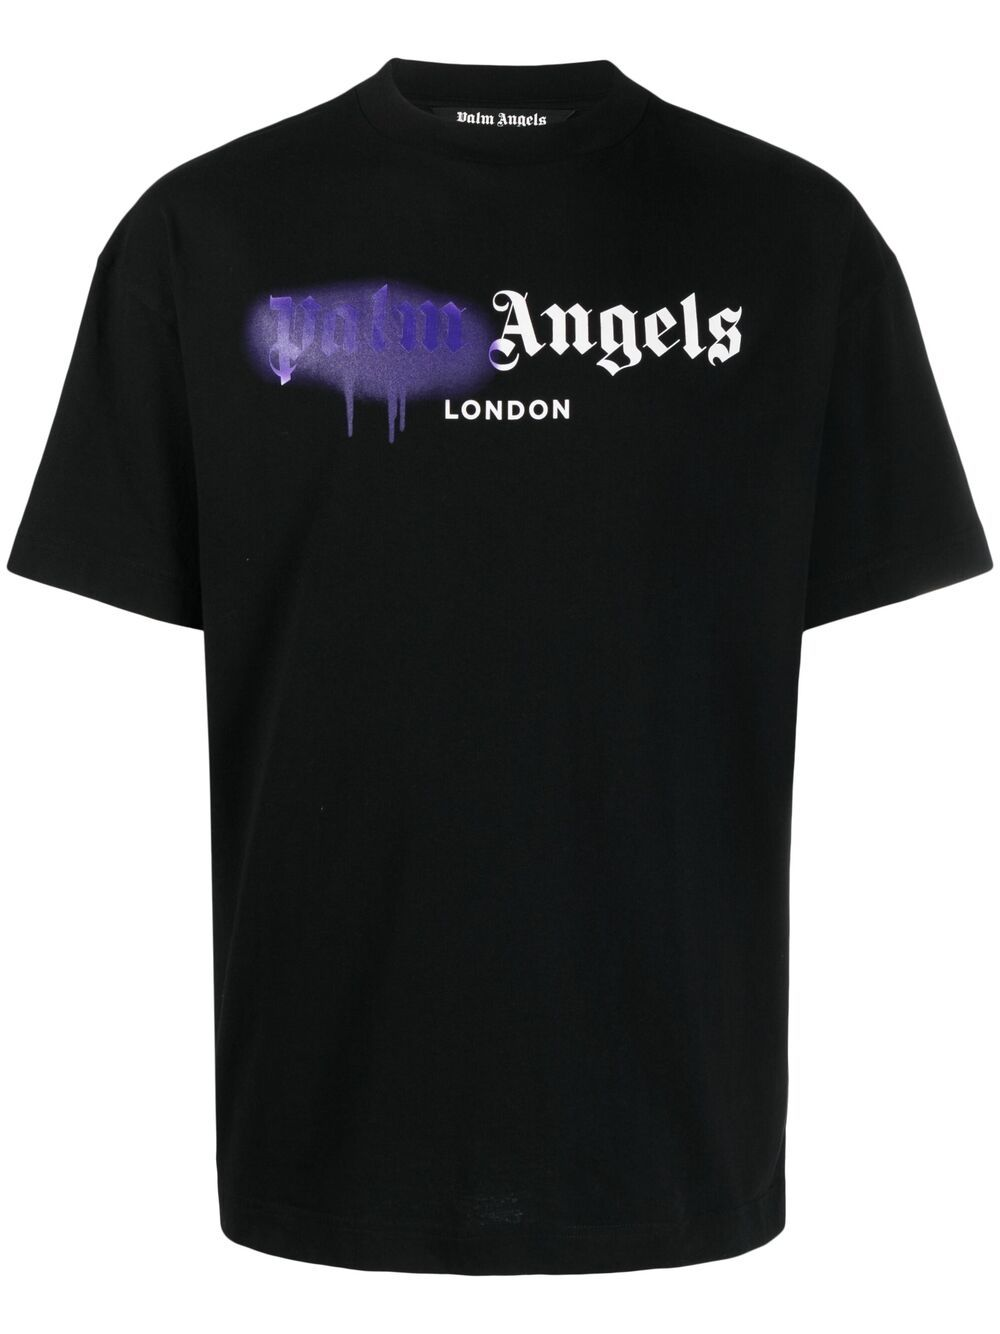 <p class='small-title'>PALM ANGELS</p>LA Logo Print T-Shirt